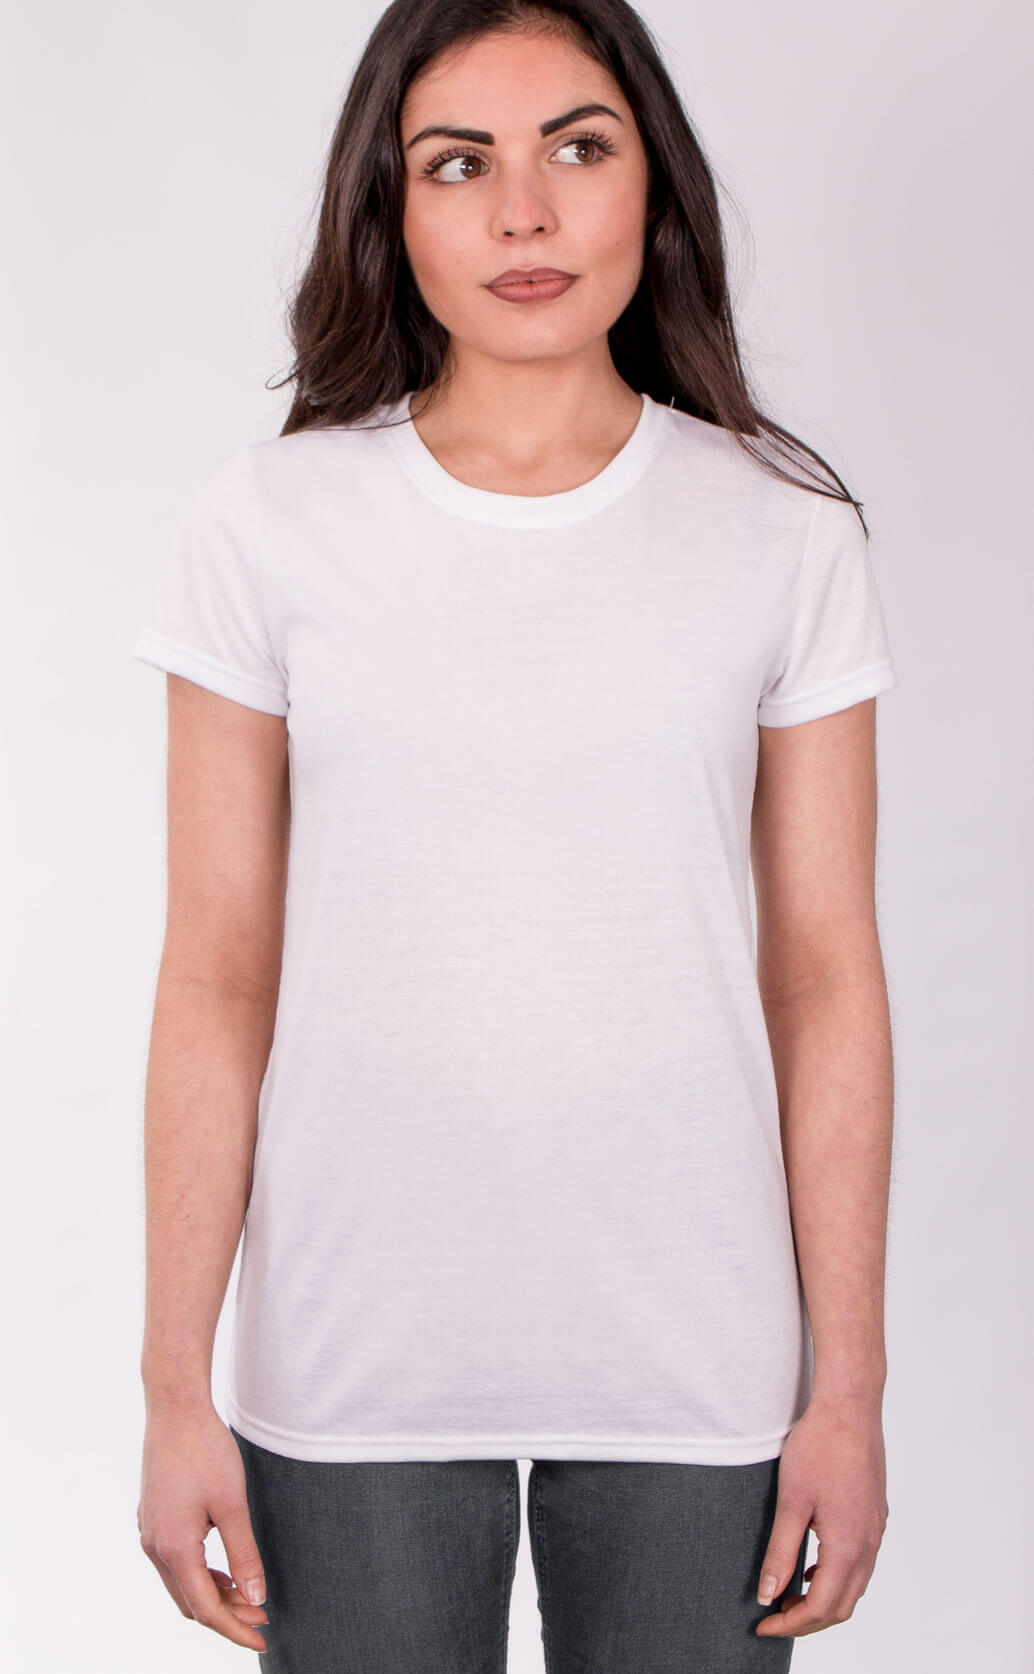 Size guide image for Lady Sub shirt type. Model is dressed in white t shirt and dark jeans.